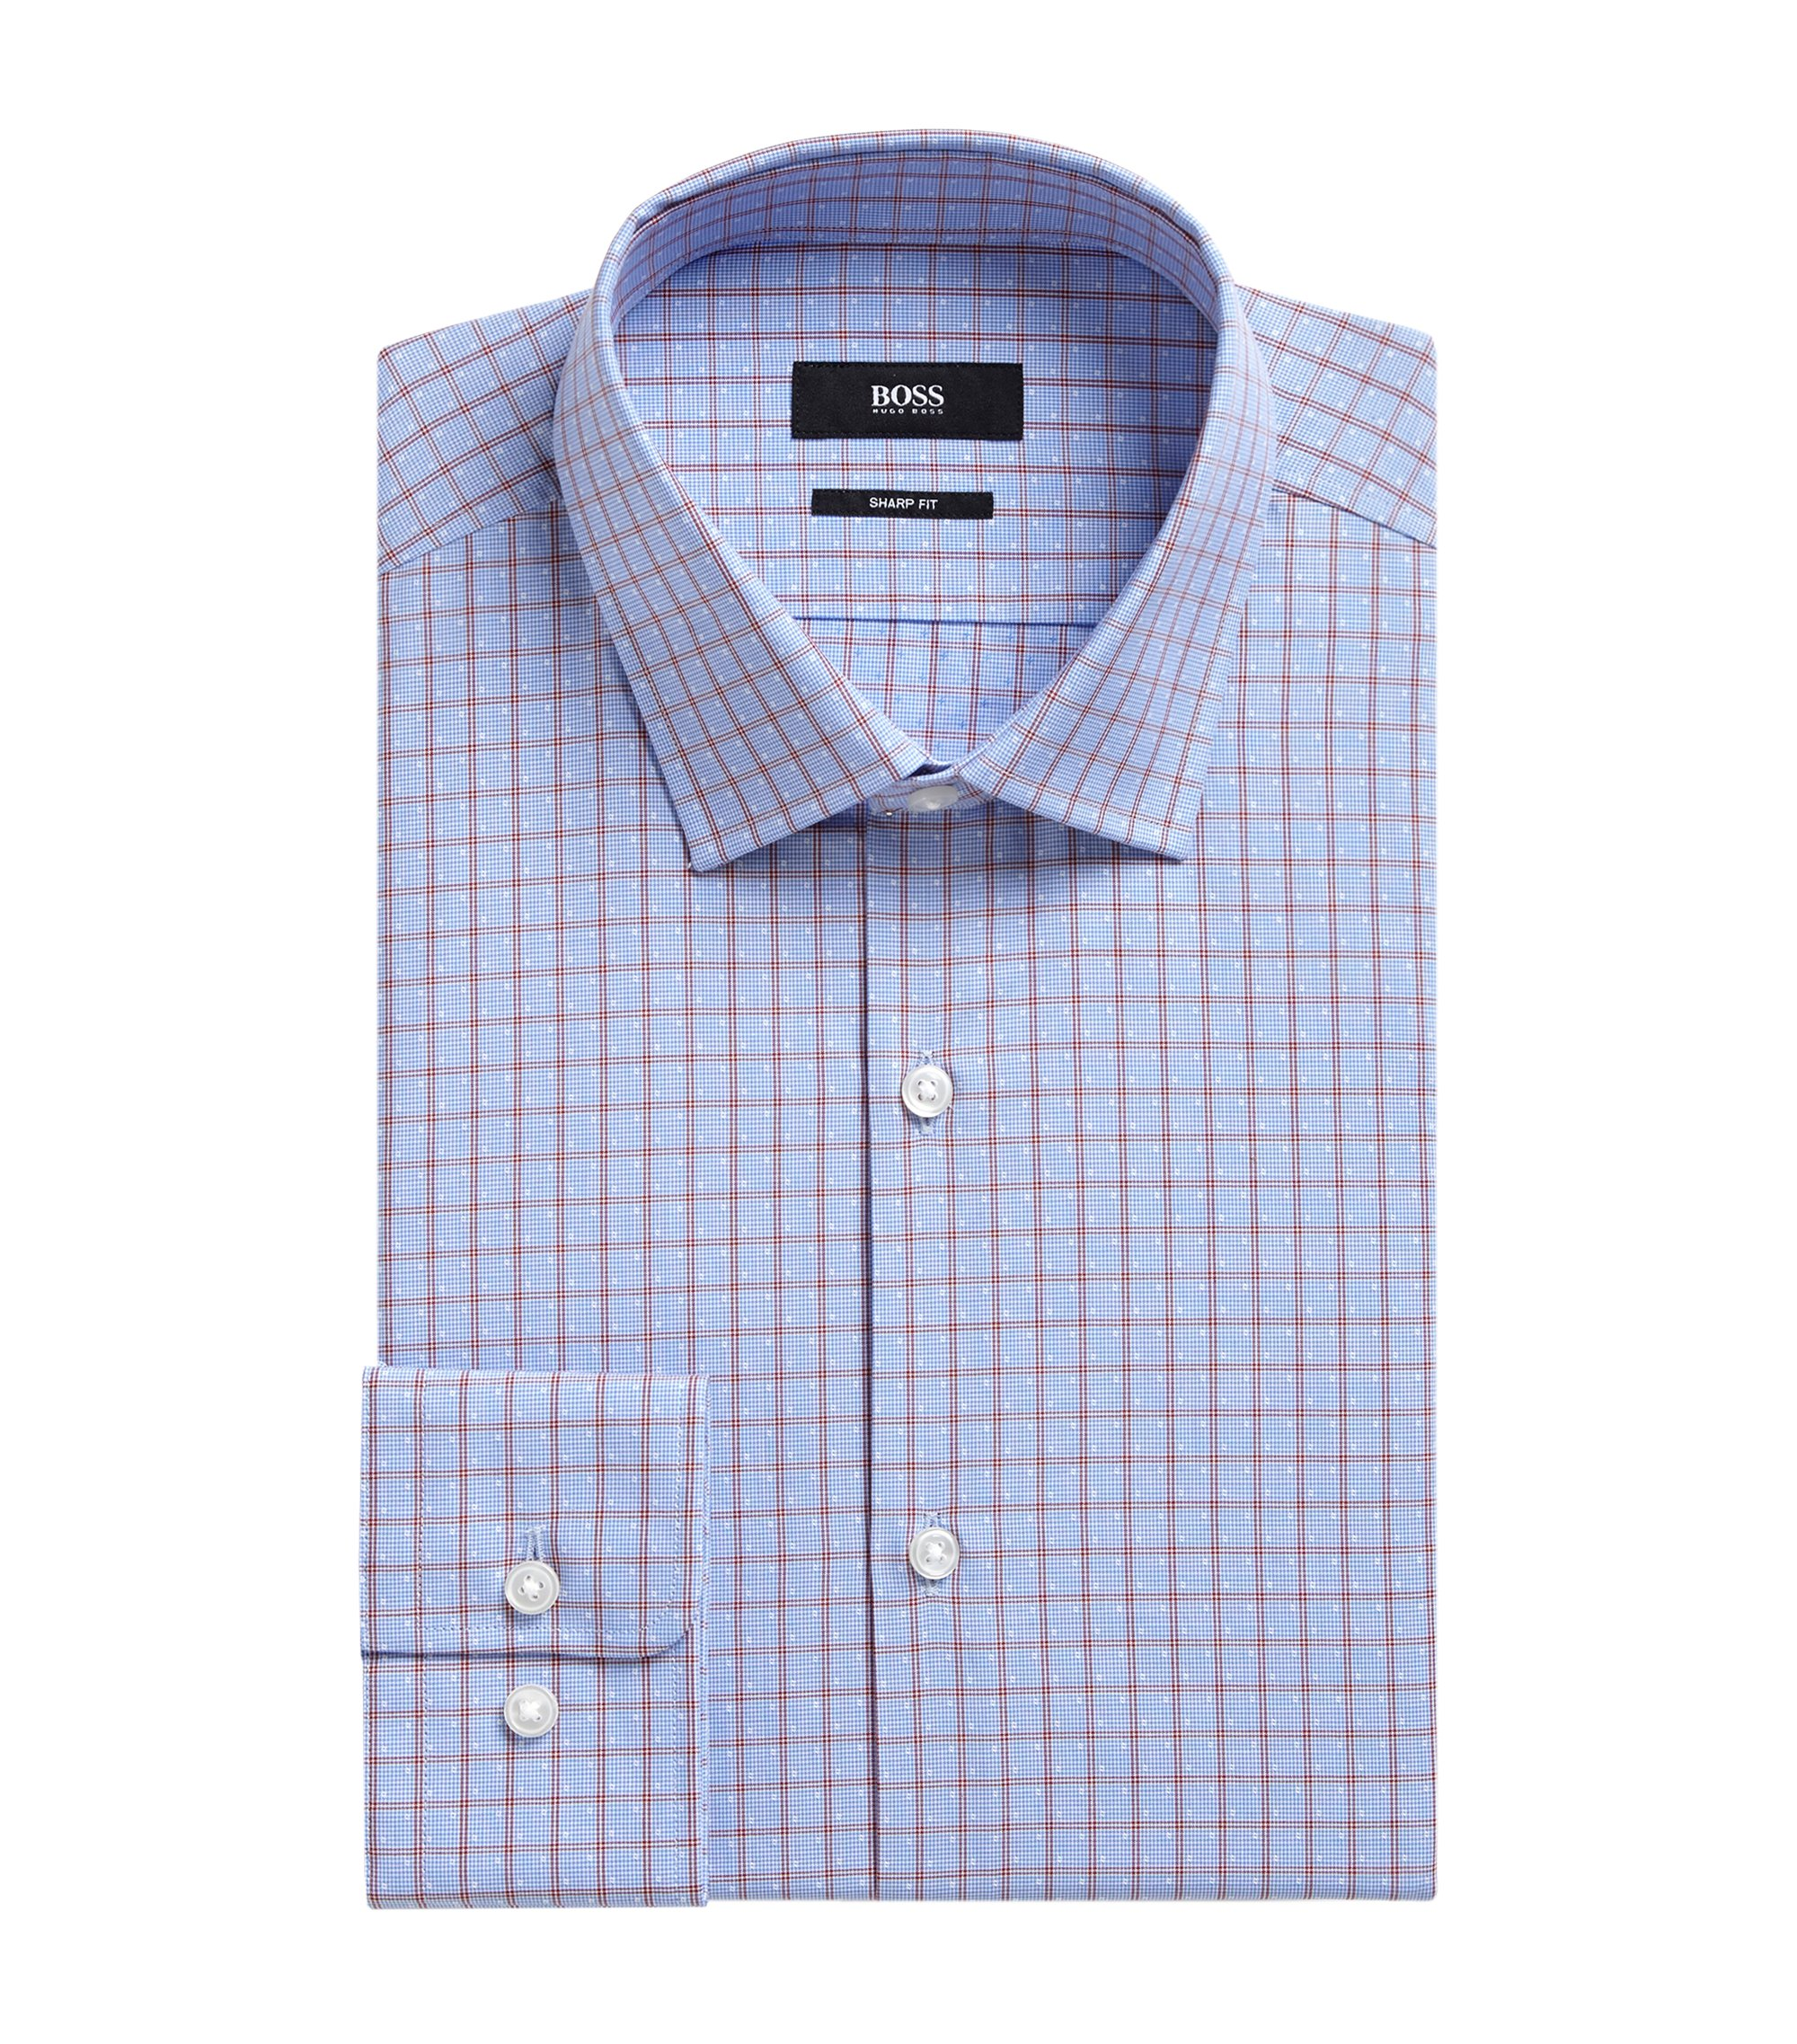 Checked Cotton Dress Shirt, Sharp Fit | Marley US, Red